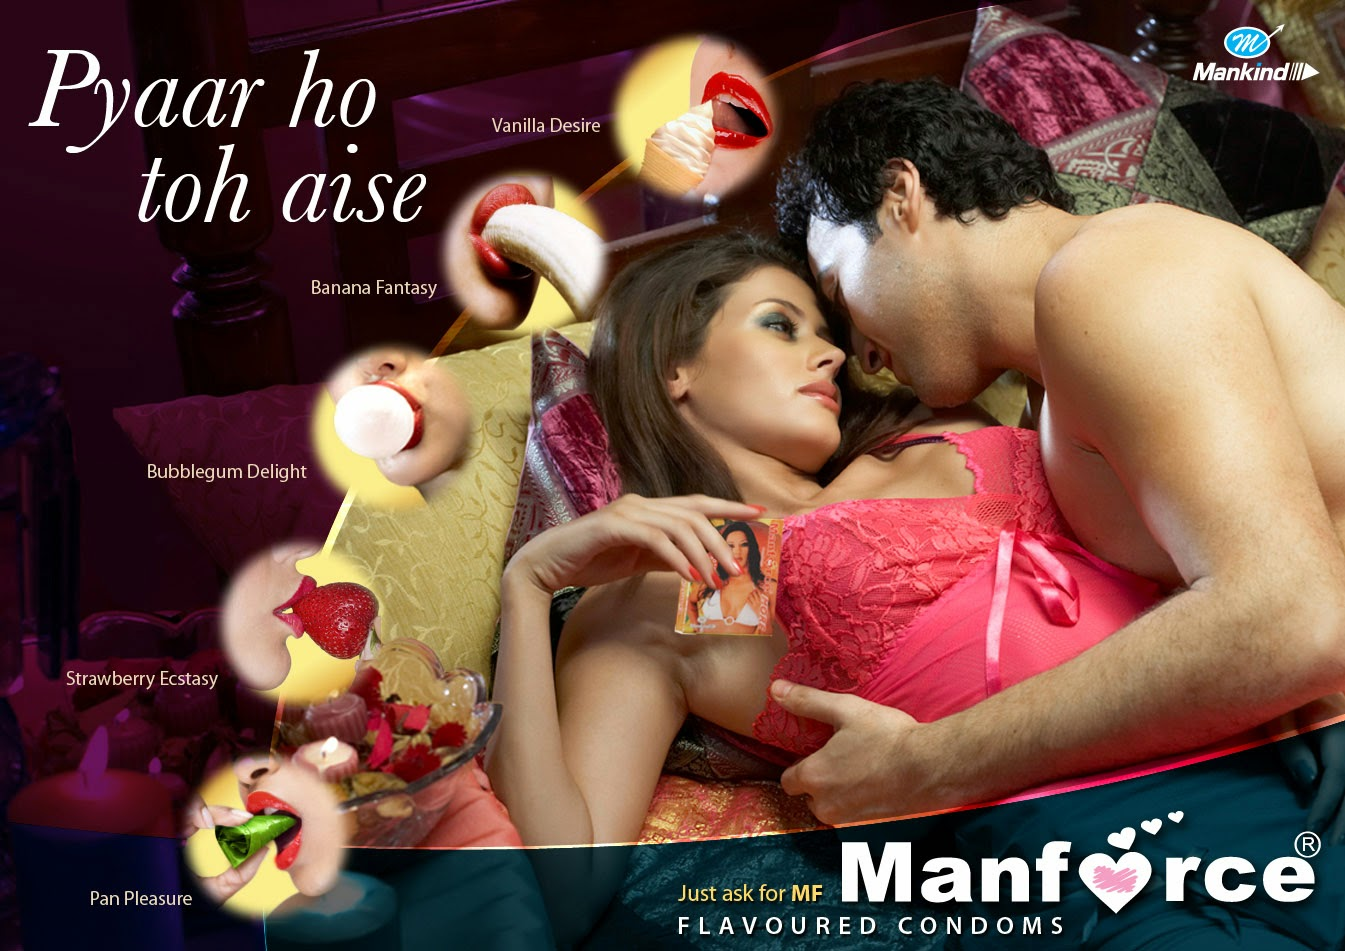 New ad of manforce condoms